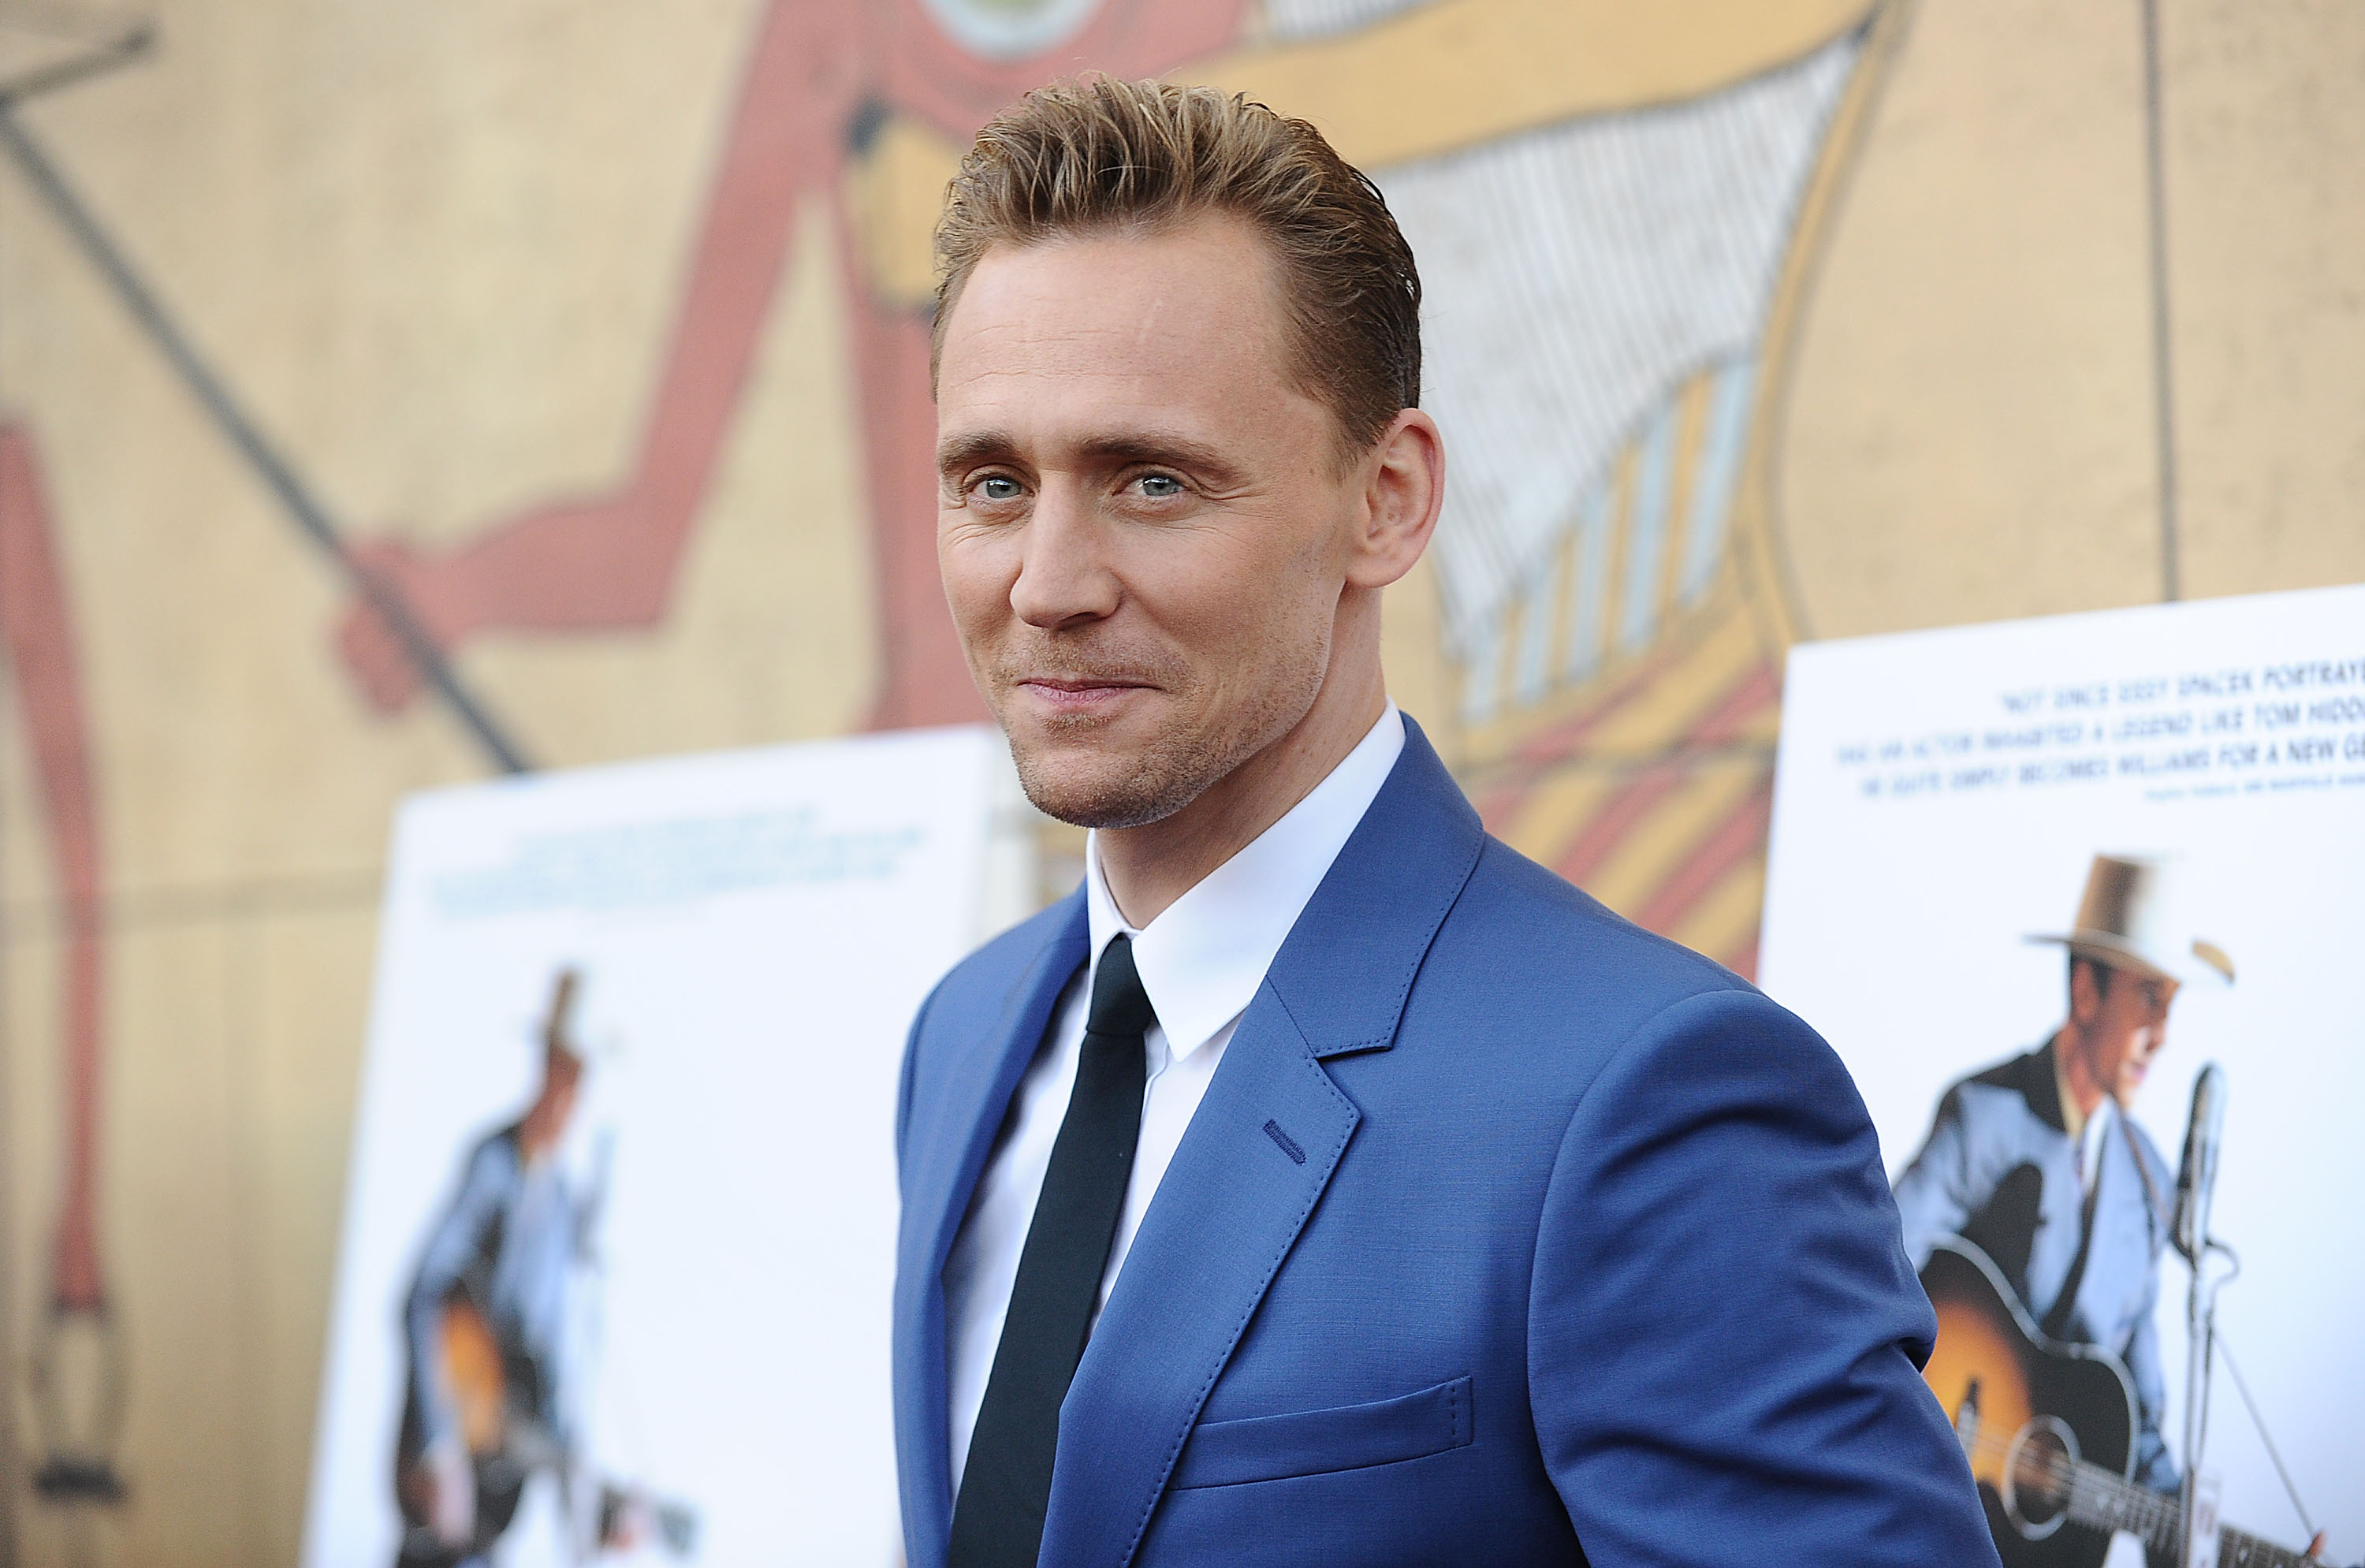 Watch Tom Hiddleston Demonstrate His New Yodeling Skills Time